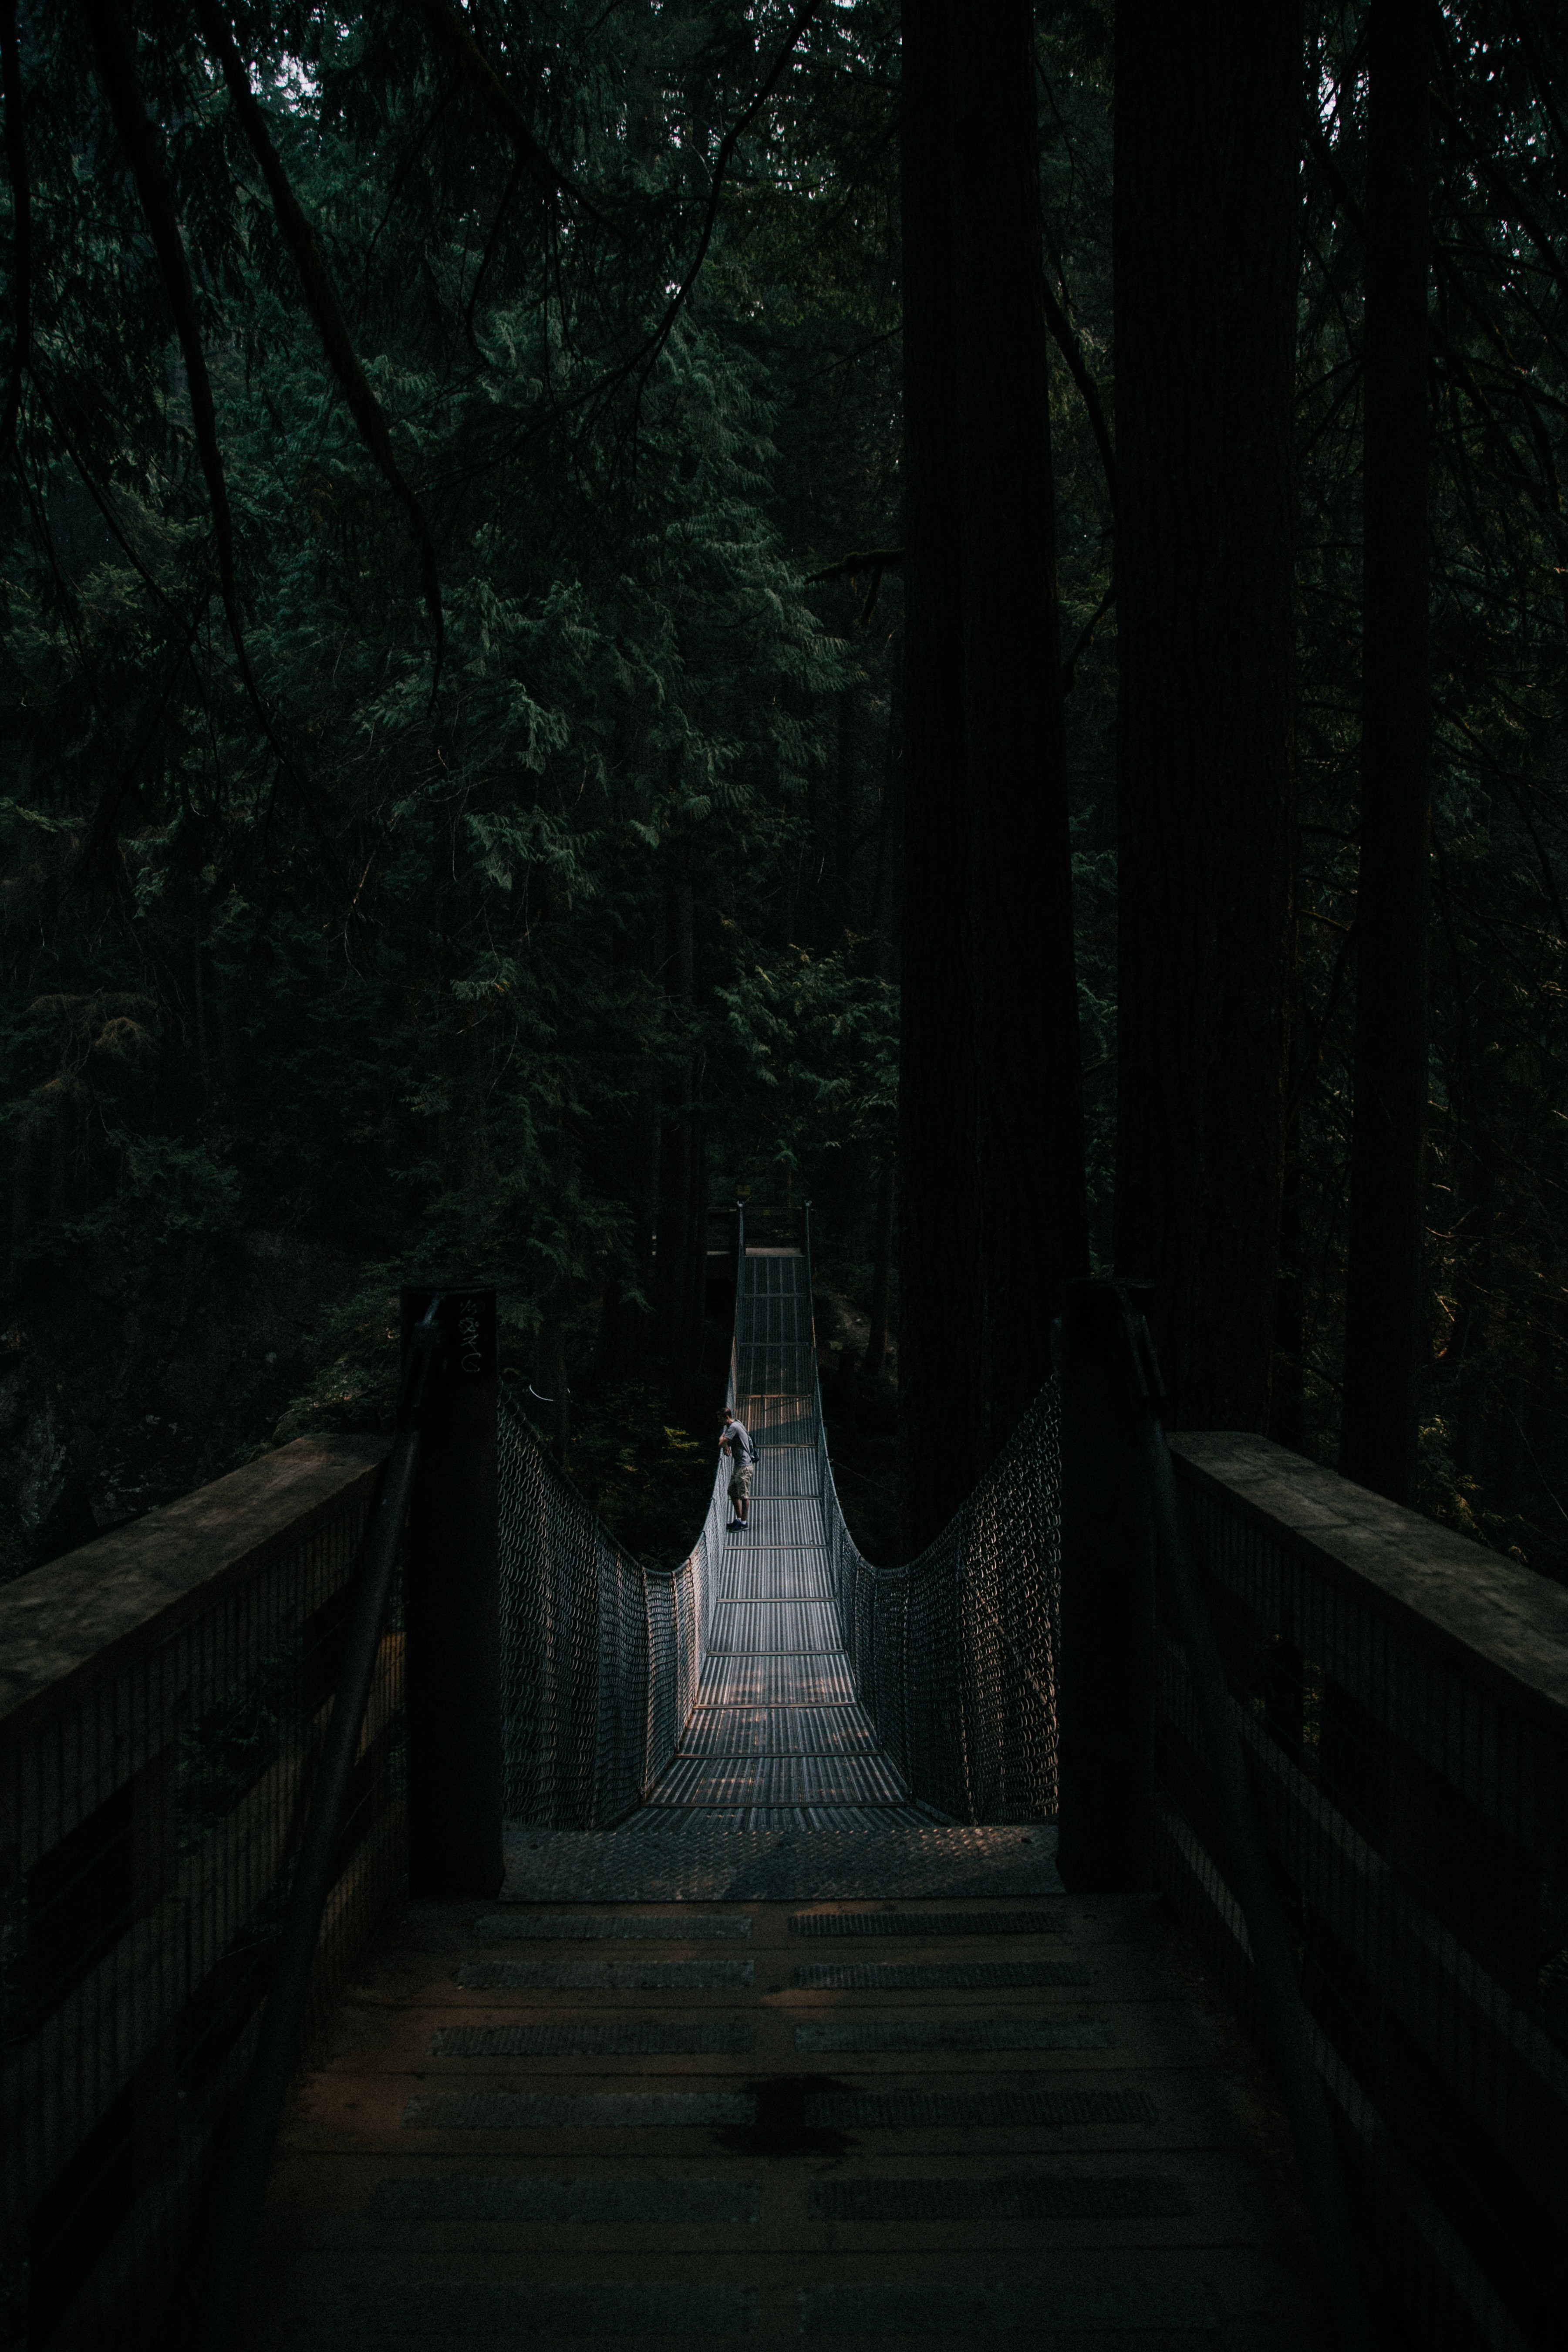 man standing at middle of hanging bridge